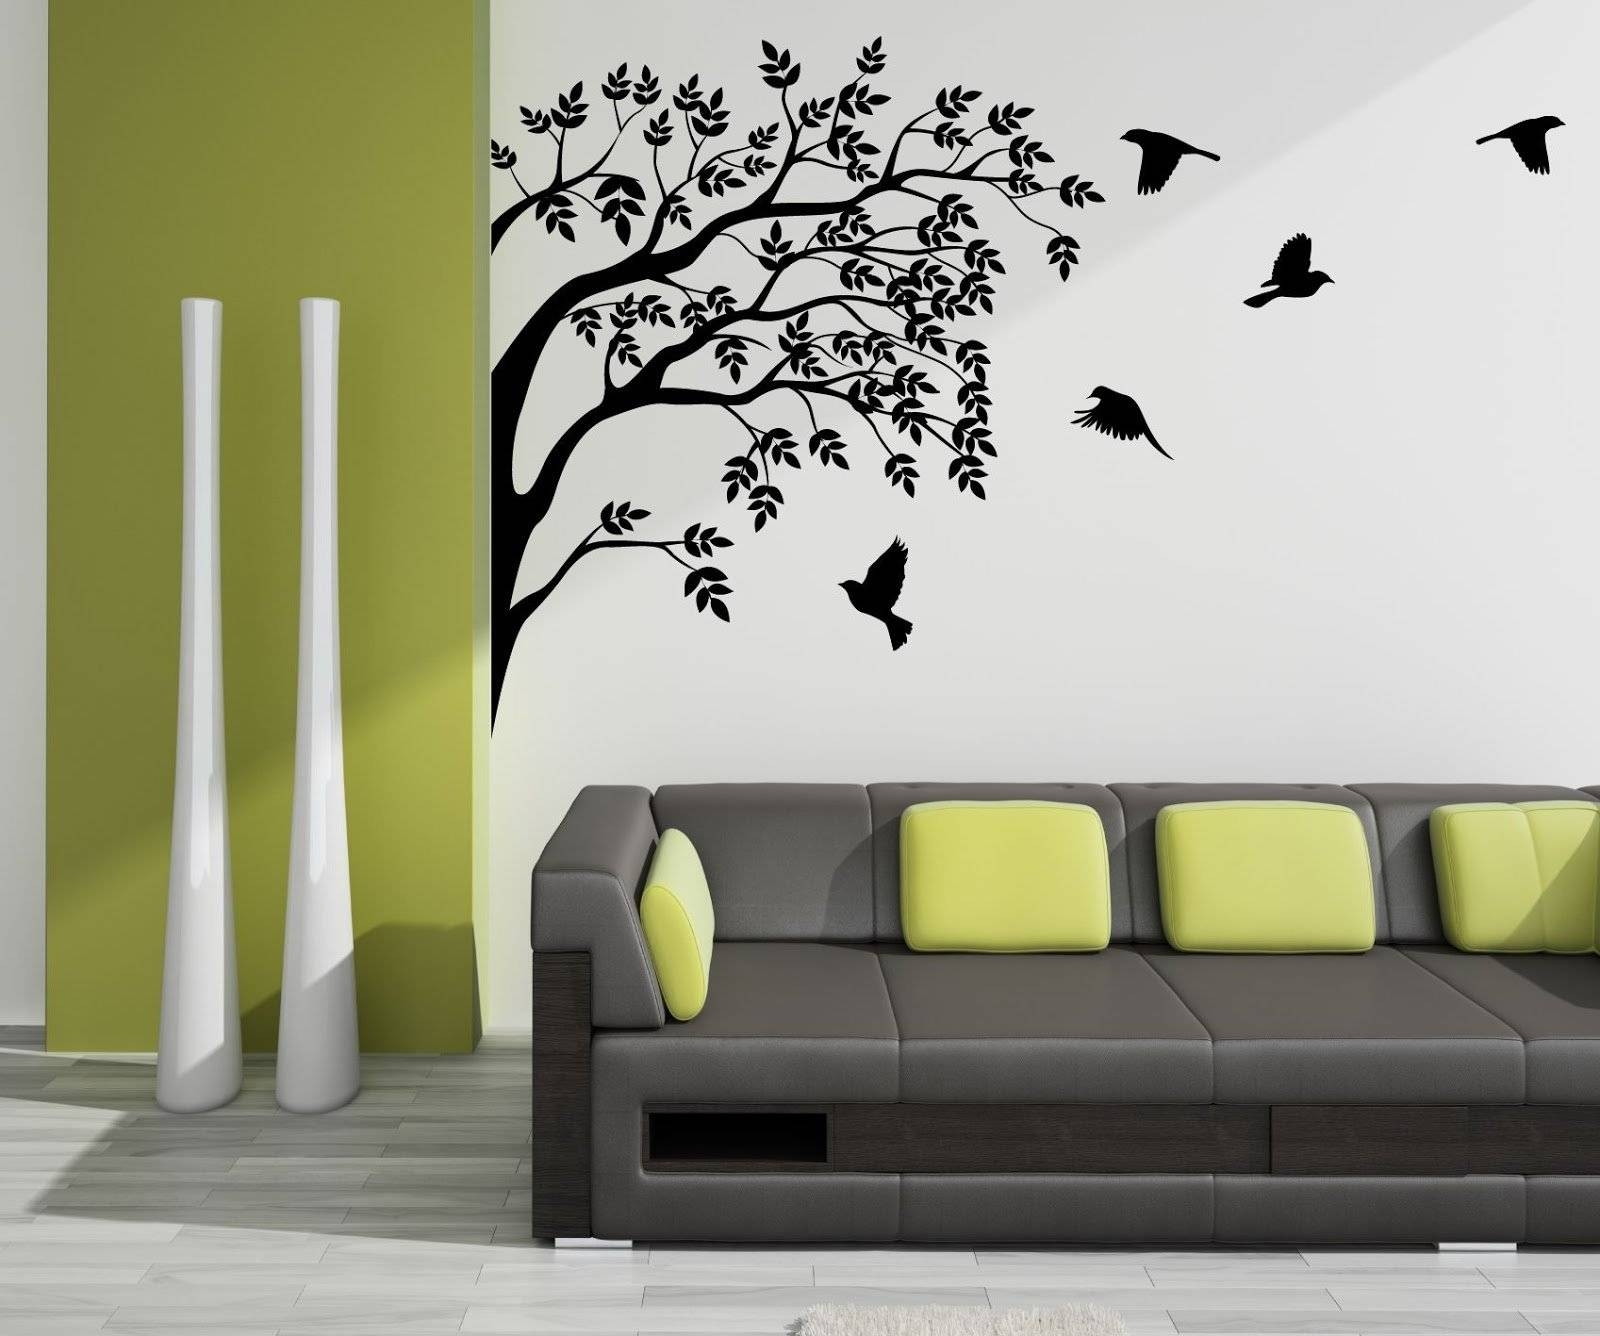 Wall Graphic Designs | Jumply (View 17 of 20)